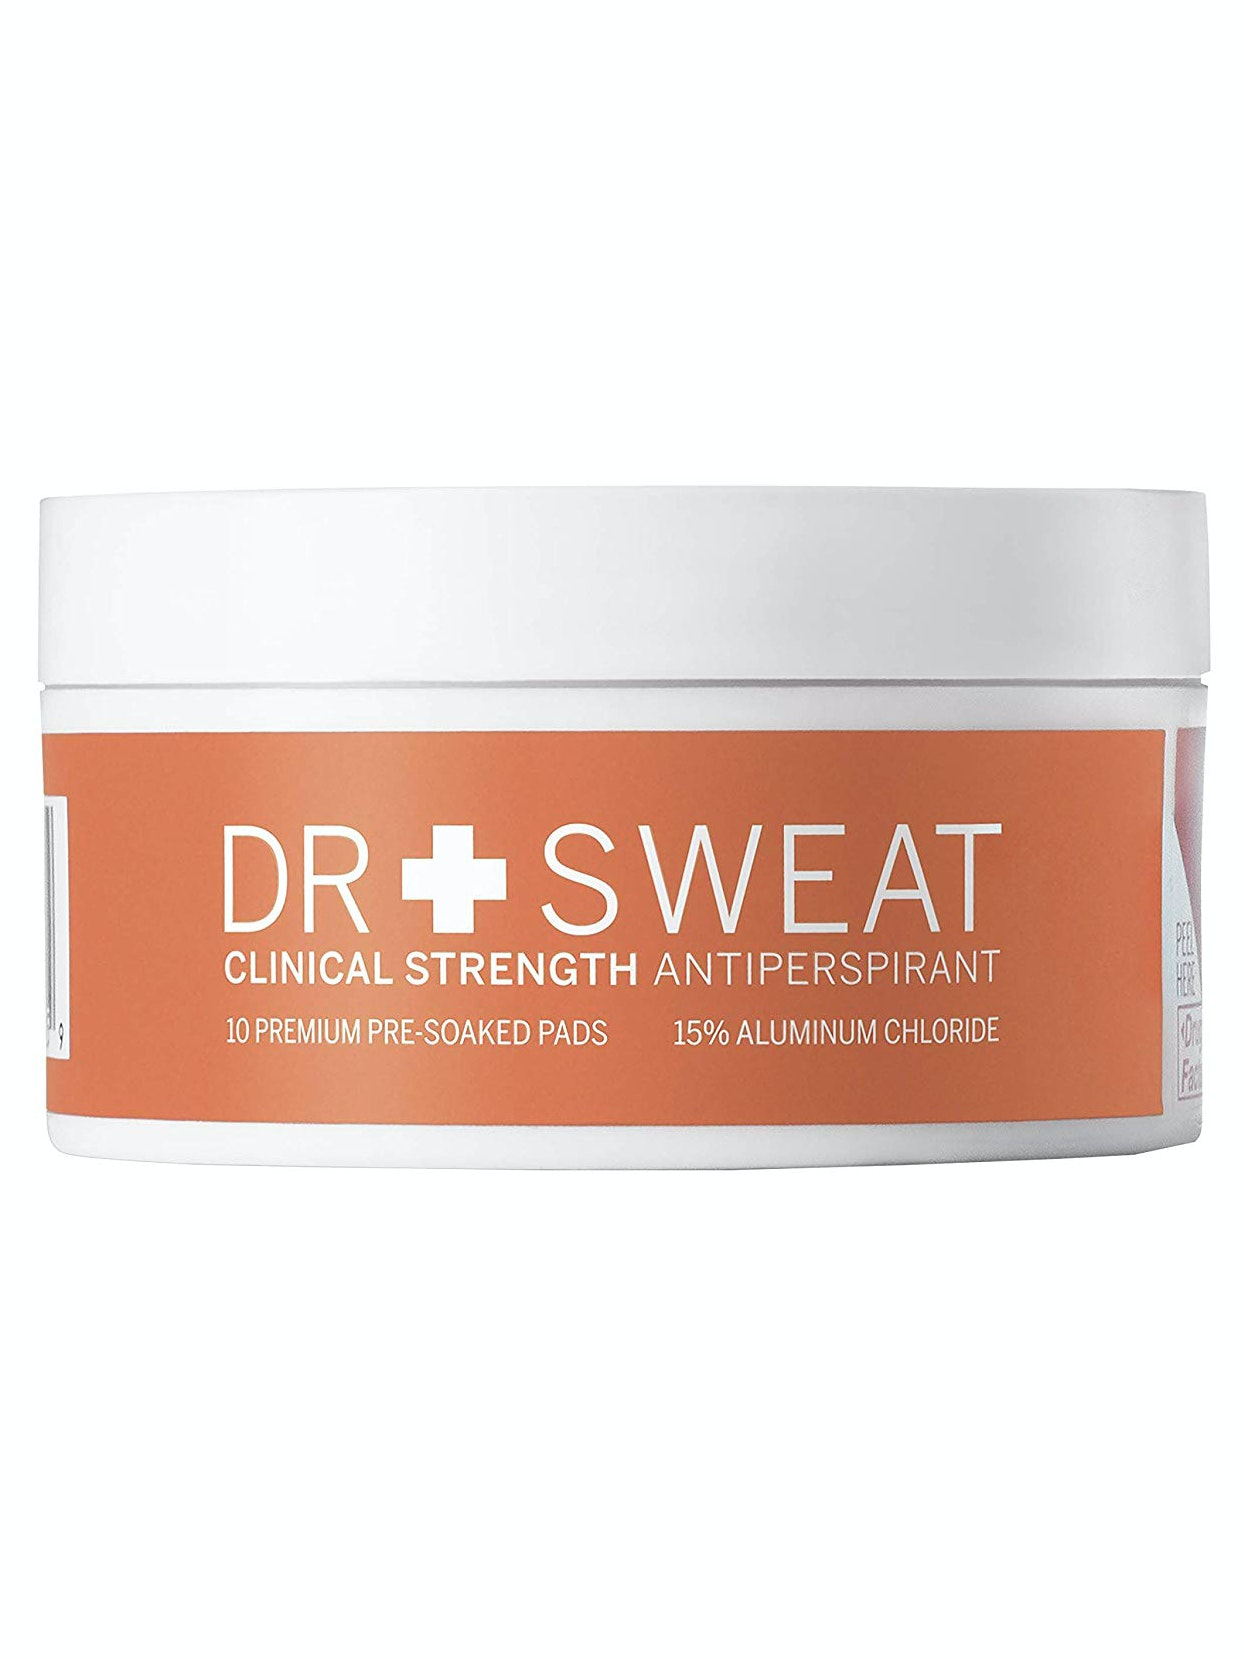 Dr. Sweat Clinical Strength Antiperspirant pads